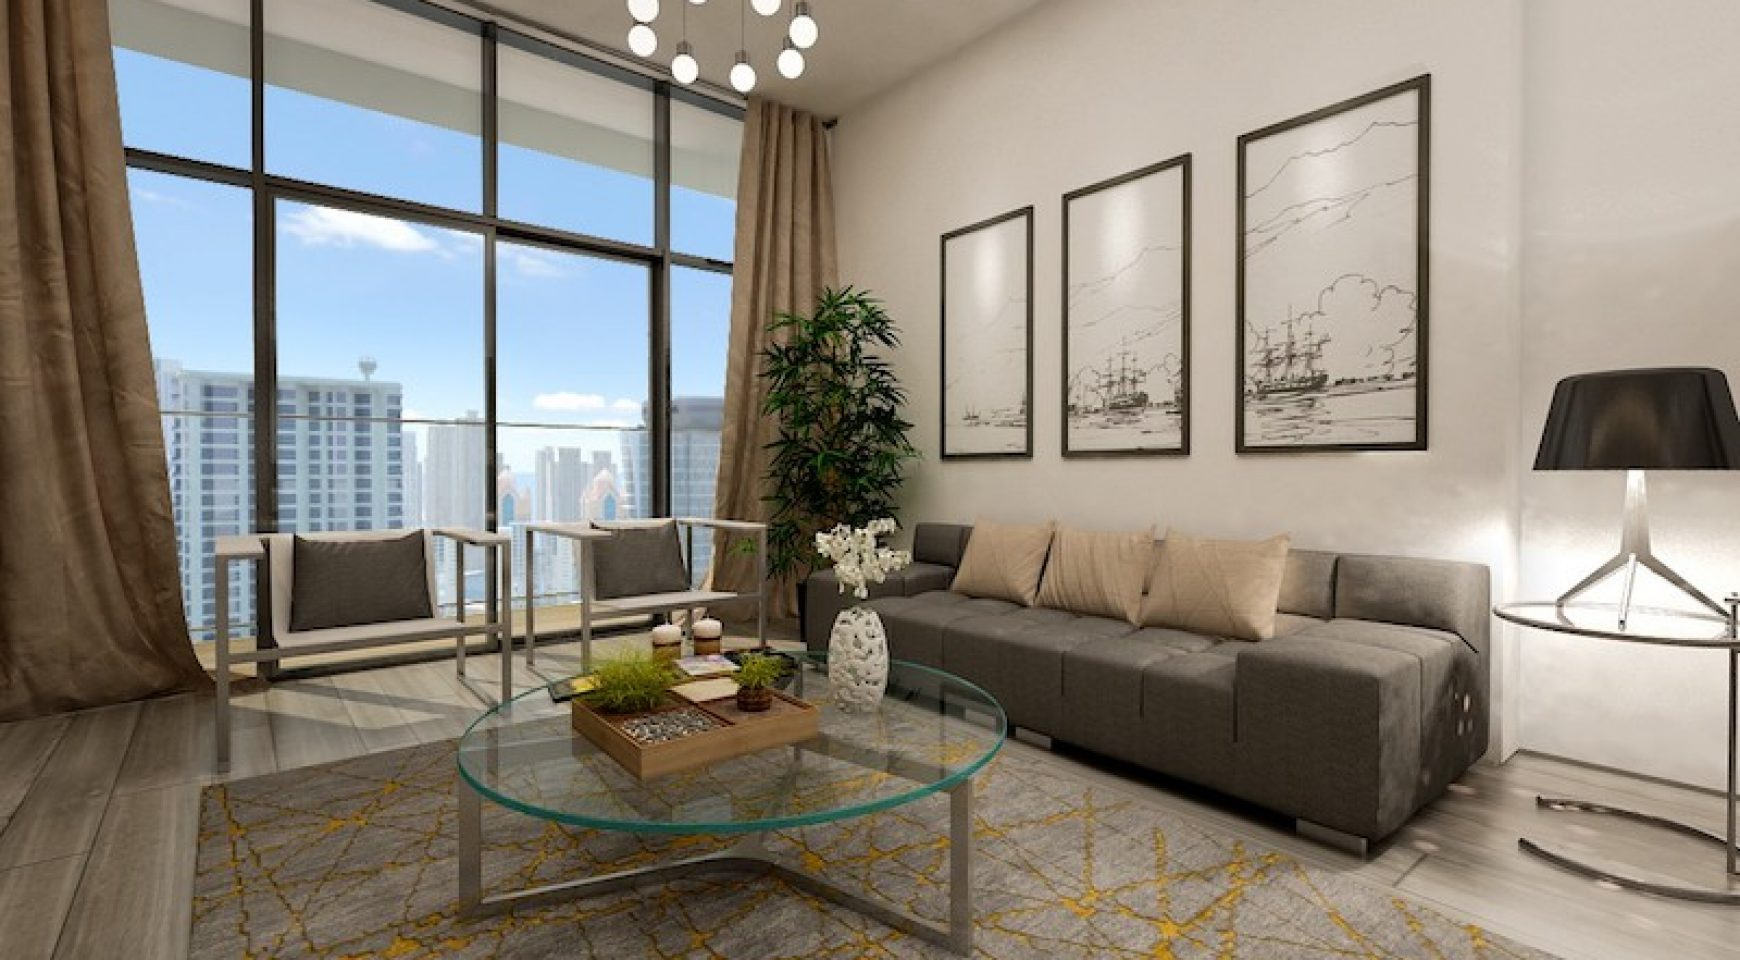 Seven Palm by Seven Tides at Palm Jumeirah - 5* Hotel Apartments for sale